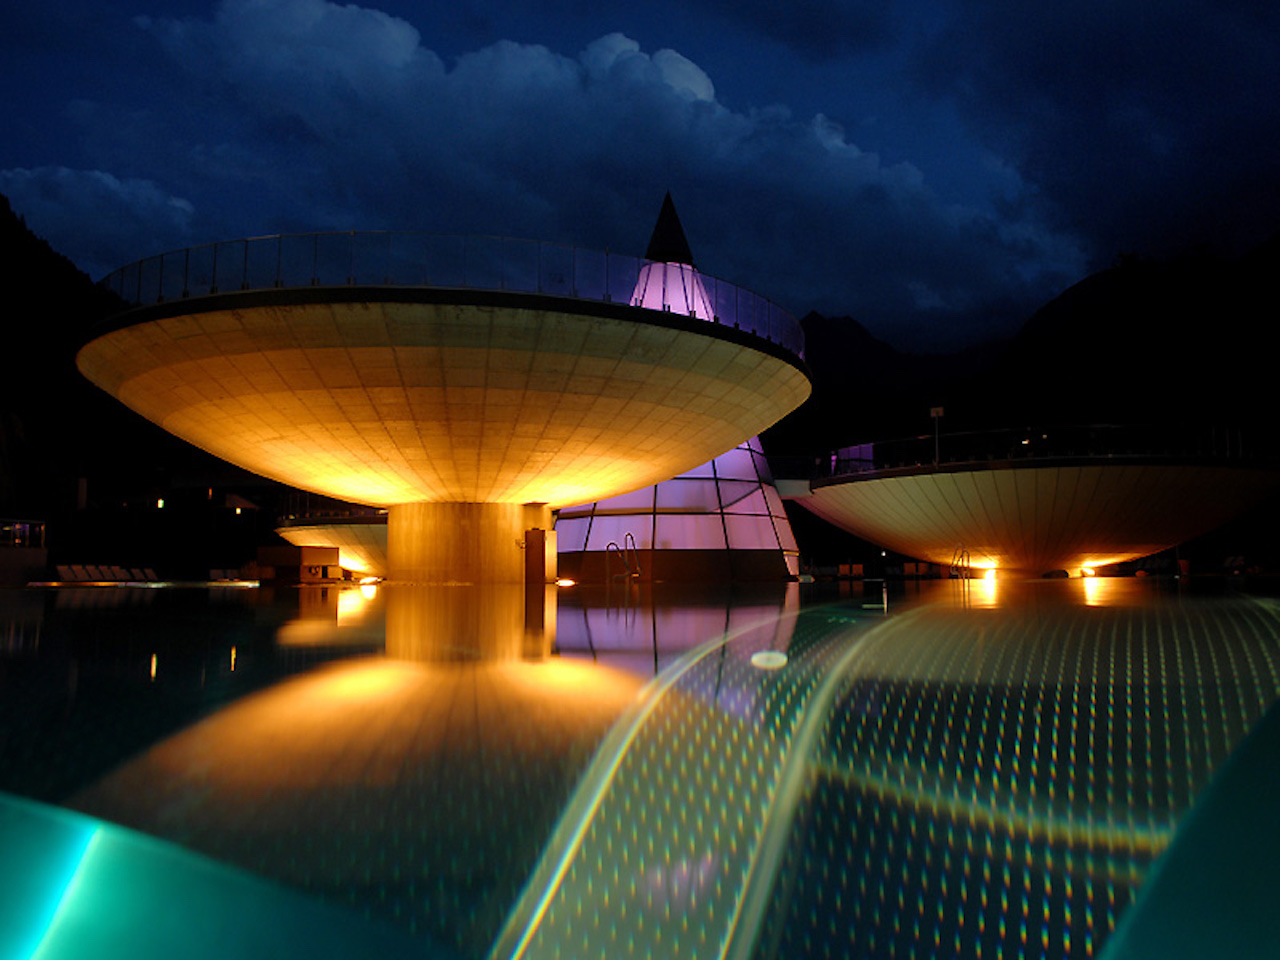 Aqua Dome Tirol. Outdoor pool